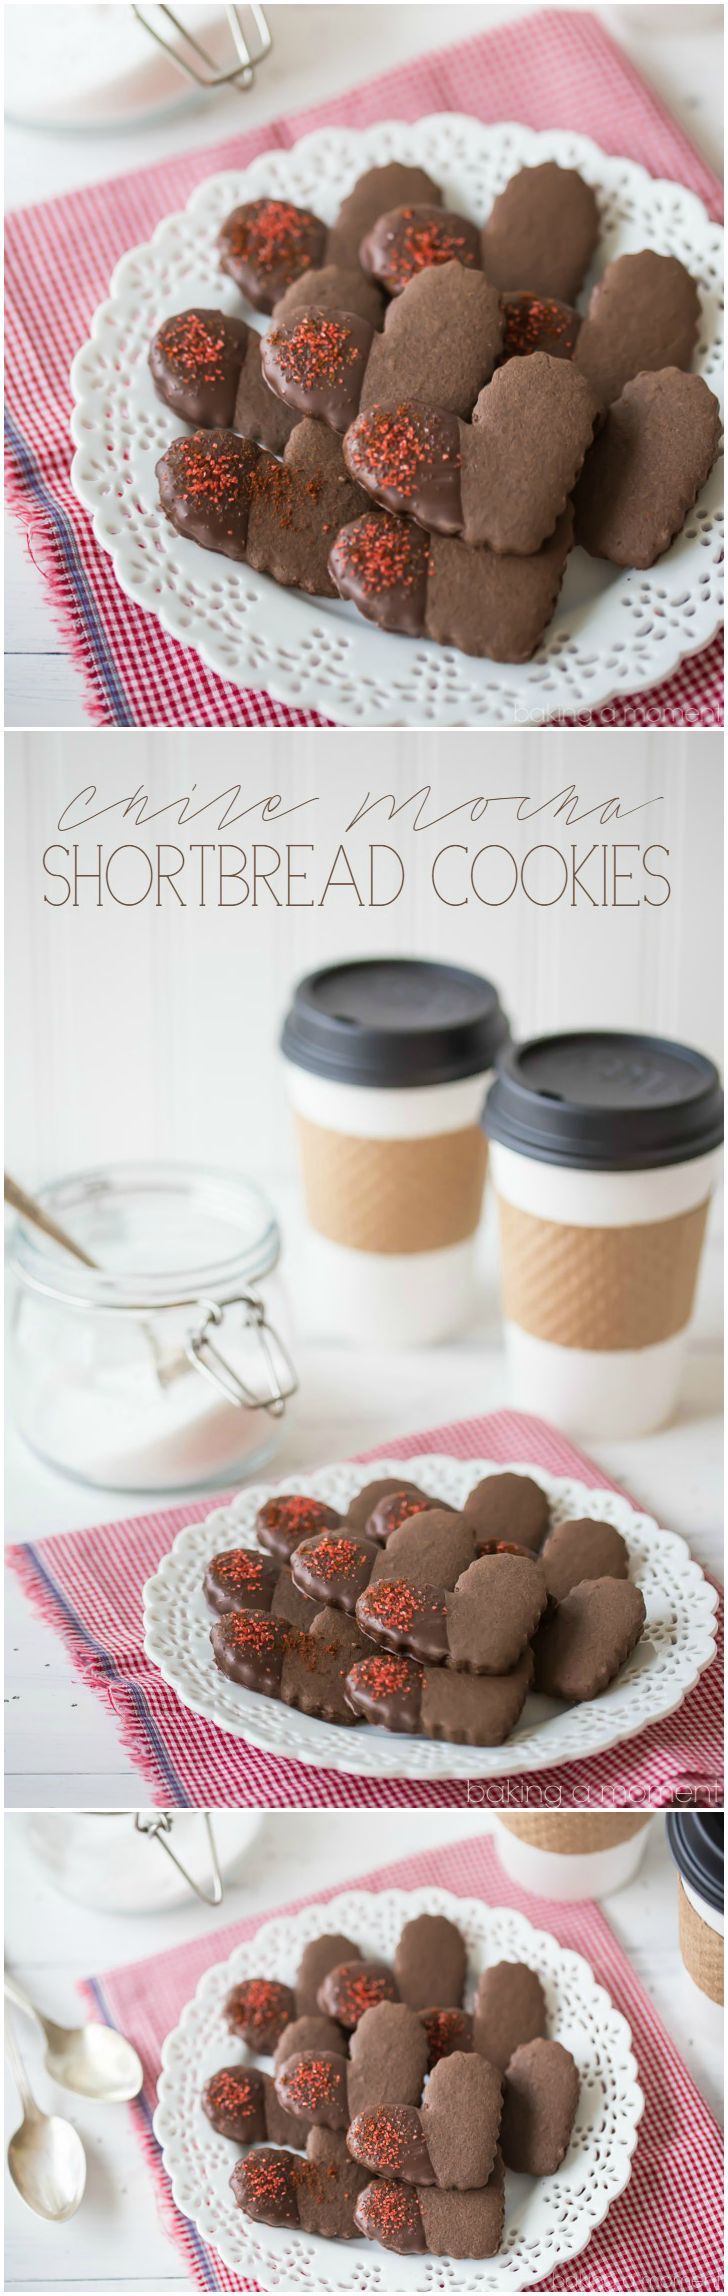 Chile Mocha Shortbread Cookies: So much flavor in these cute little hearts! Tasted just like the new Starbucks flavor, in cookie form. I loved the rich chocolate, cinnamon, and coffee, and there's just a hint of warm spice. Perfect winter treat! @boldwithbutter